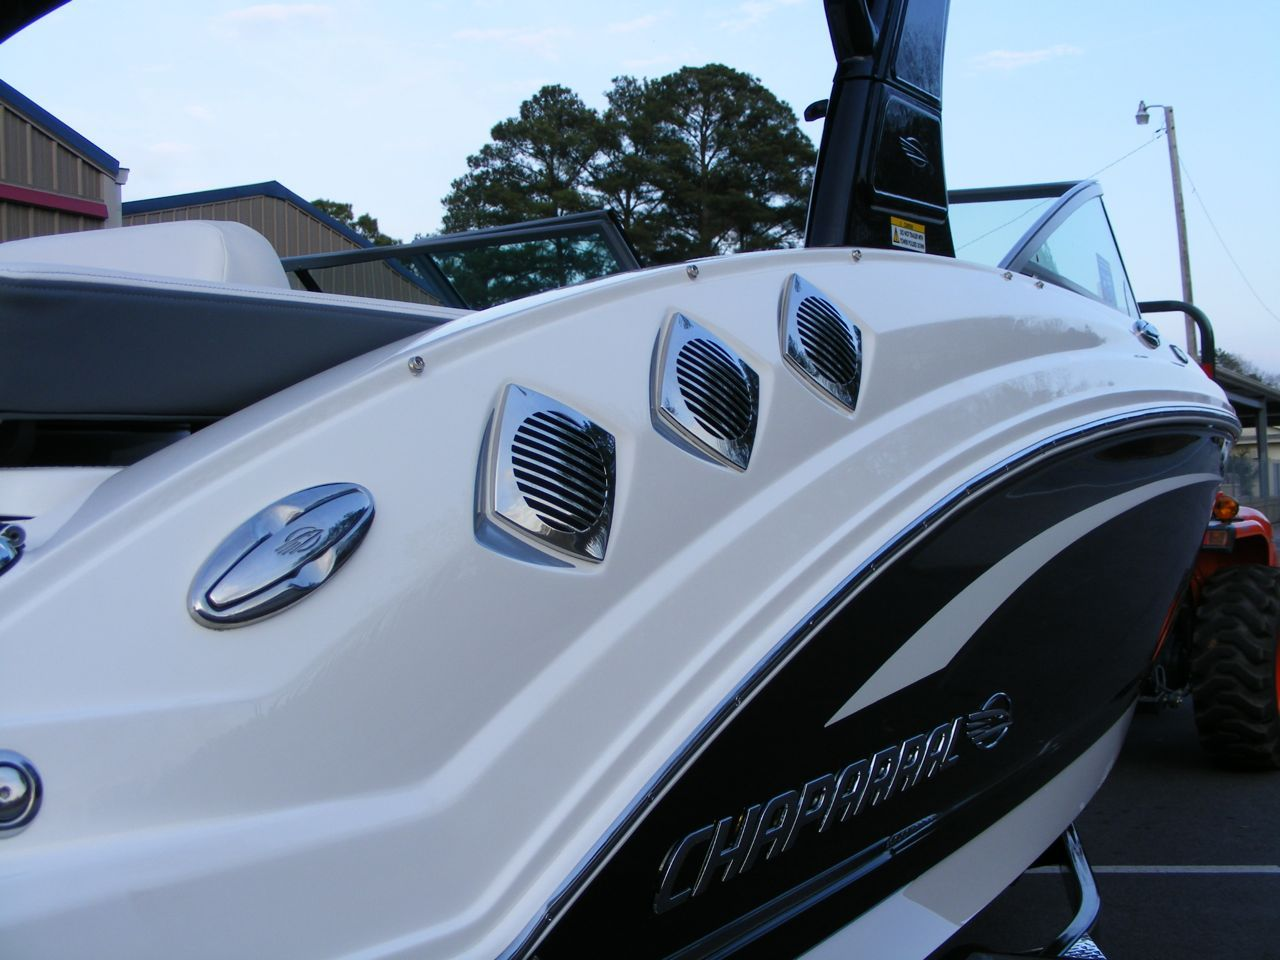 New Chaparral 226 SSi at Captain's Choice Marine | Chaparral